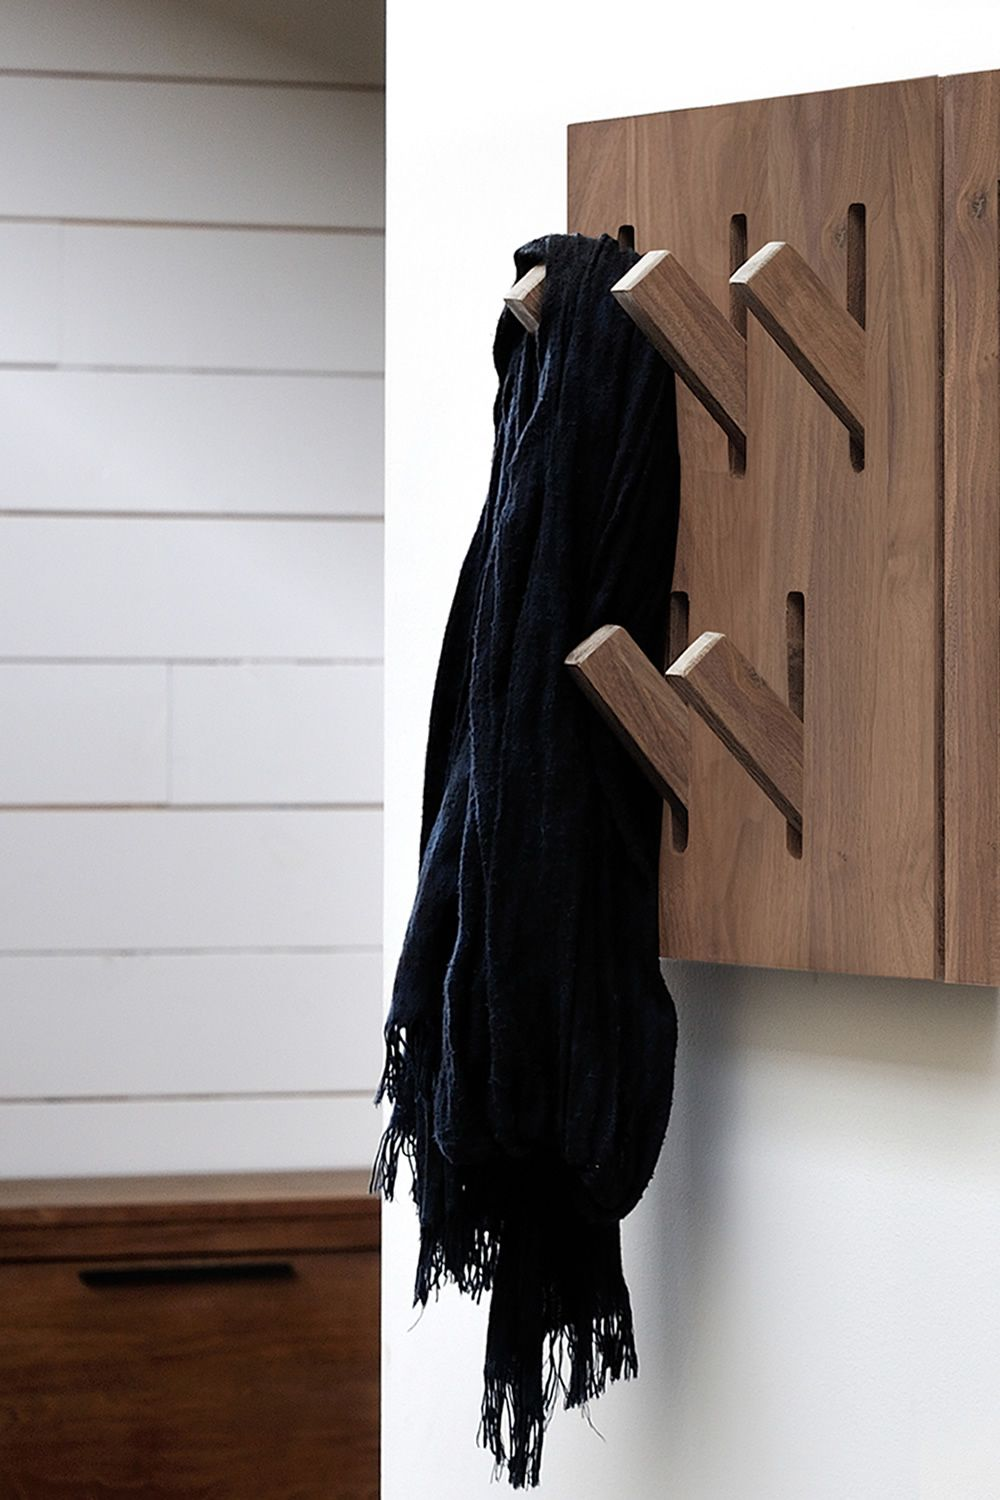 Utilitle-H | Wall coat rack with hidden hooks, made of Canaletto walnut wood